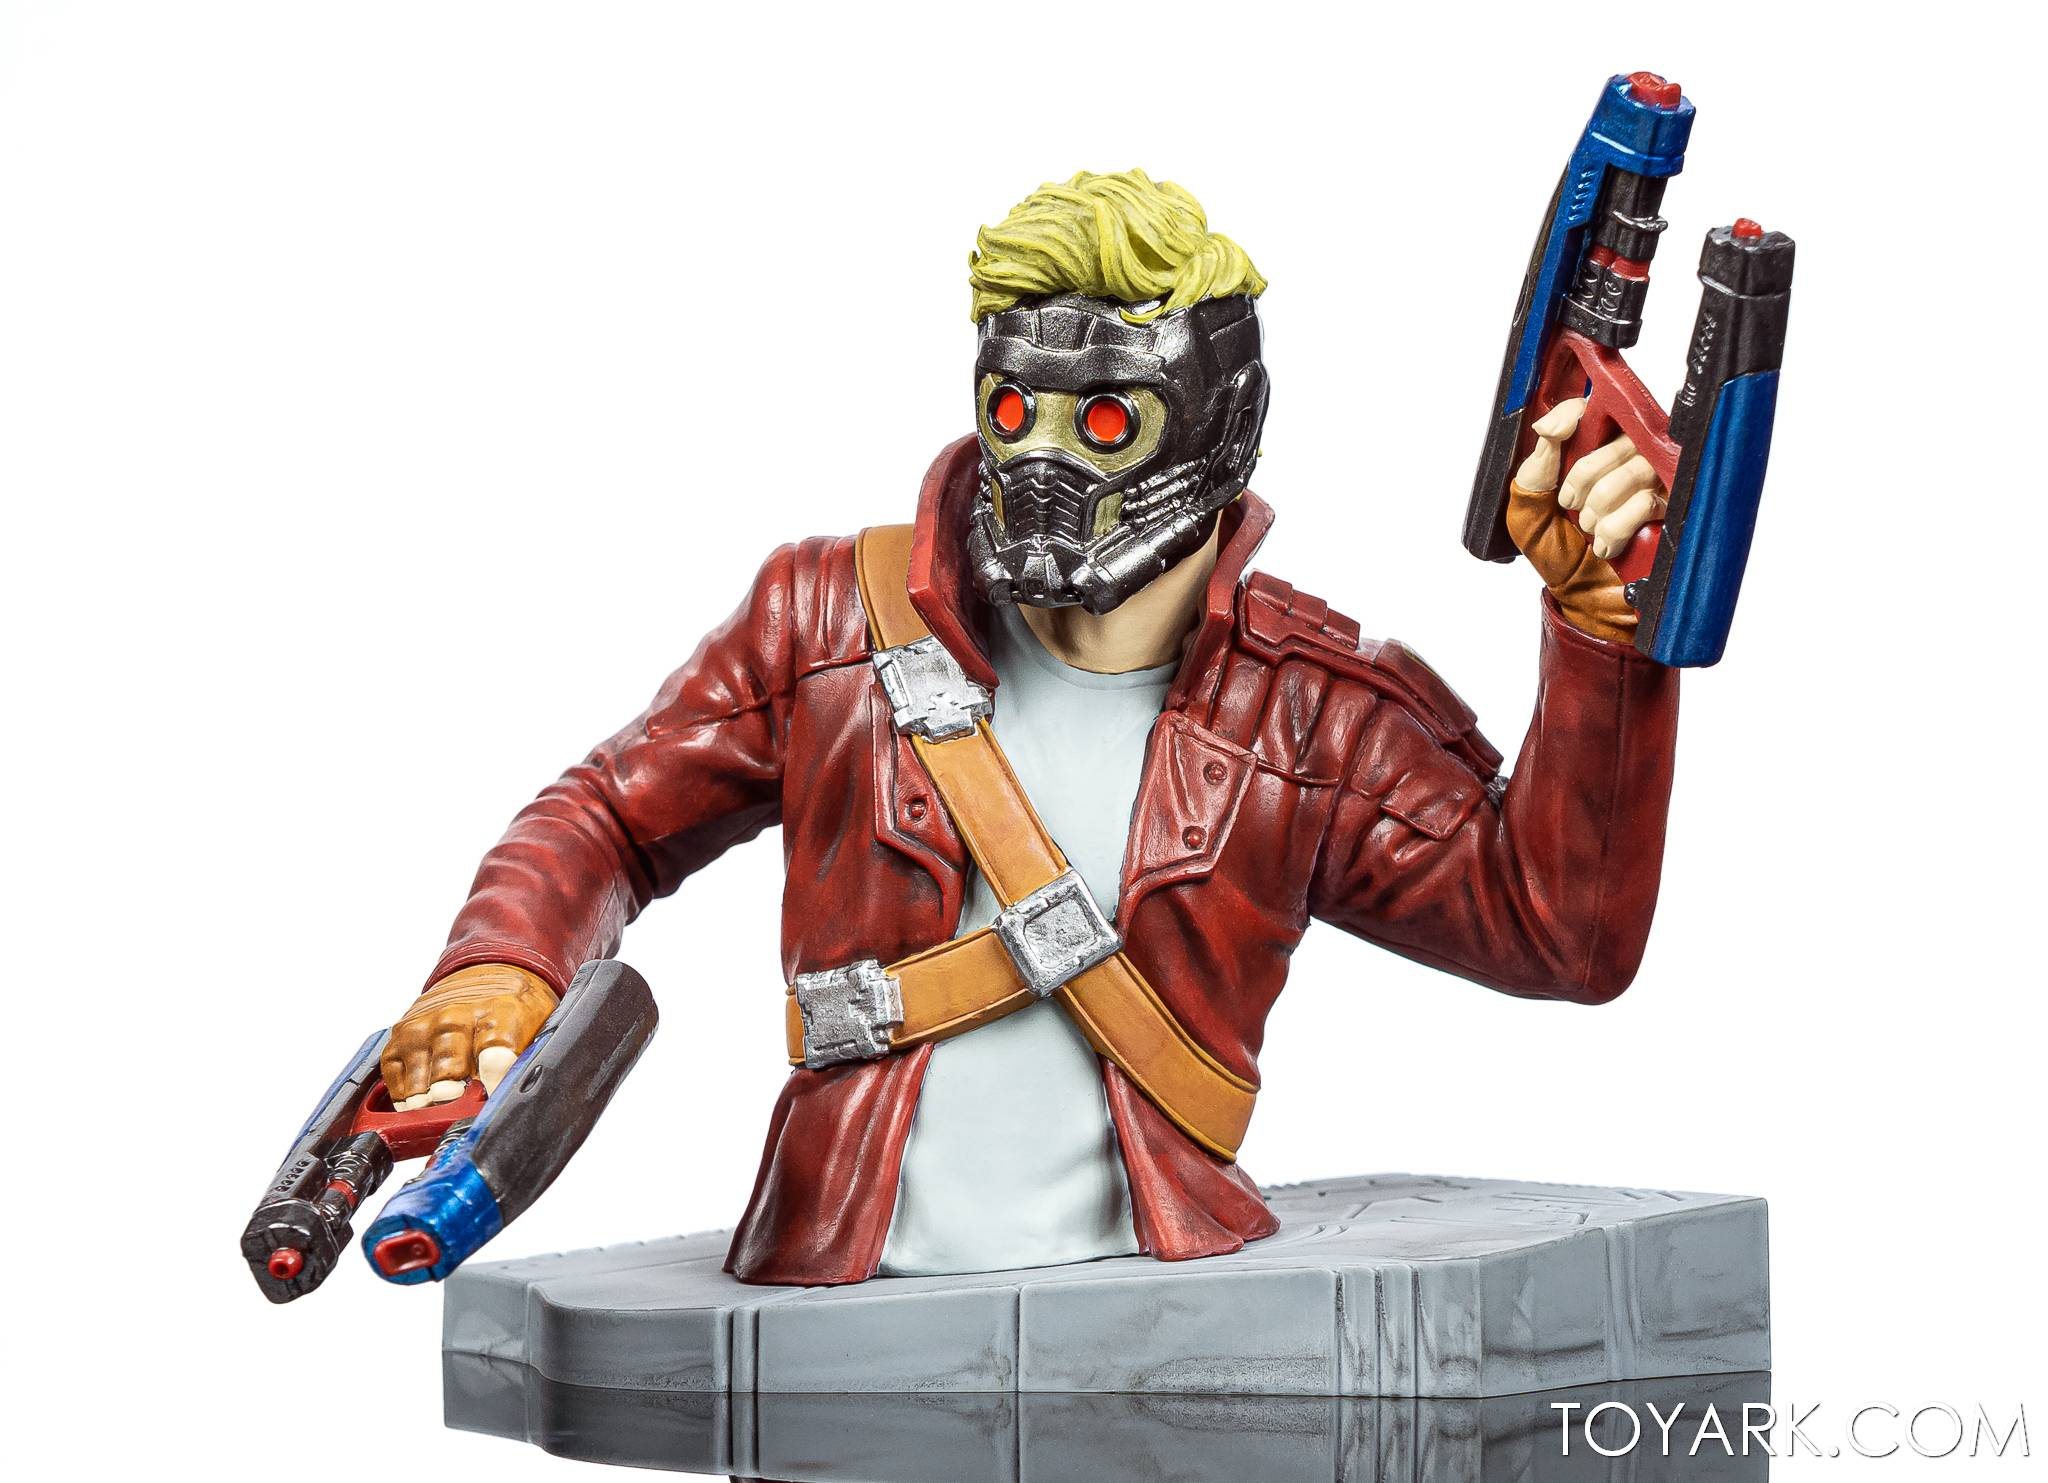 https://news.toyark.com/wp-content/uploads/sites/4/2021/04/Loot-Crate-GotG-Star-Lord-Bust-004.jpg